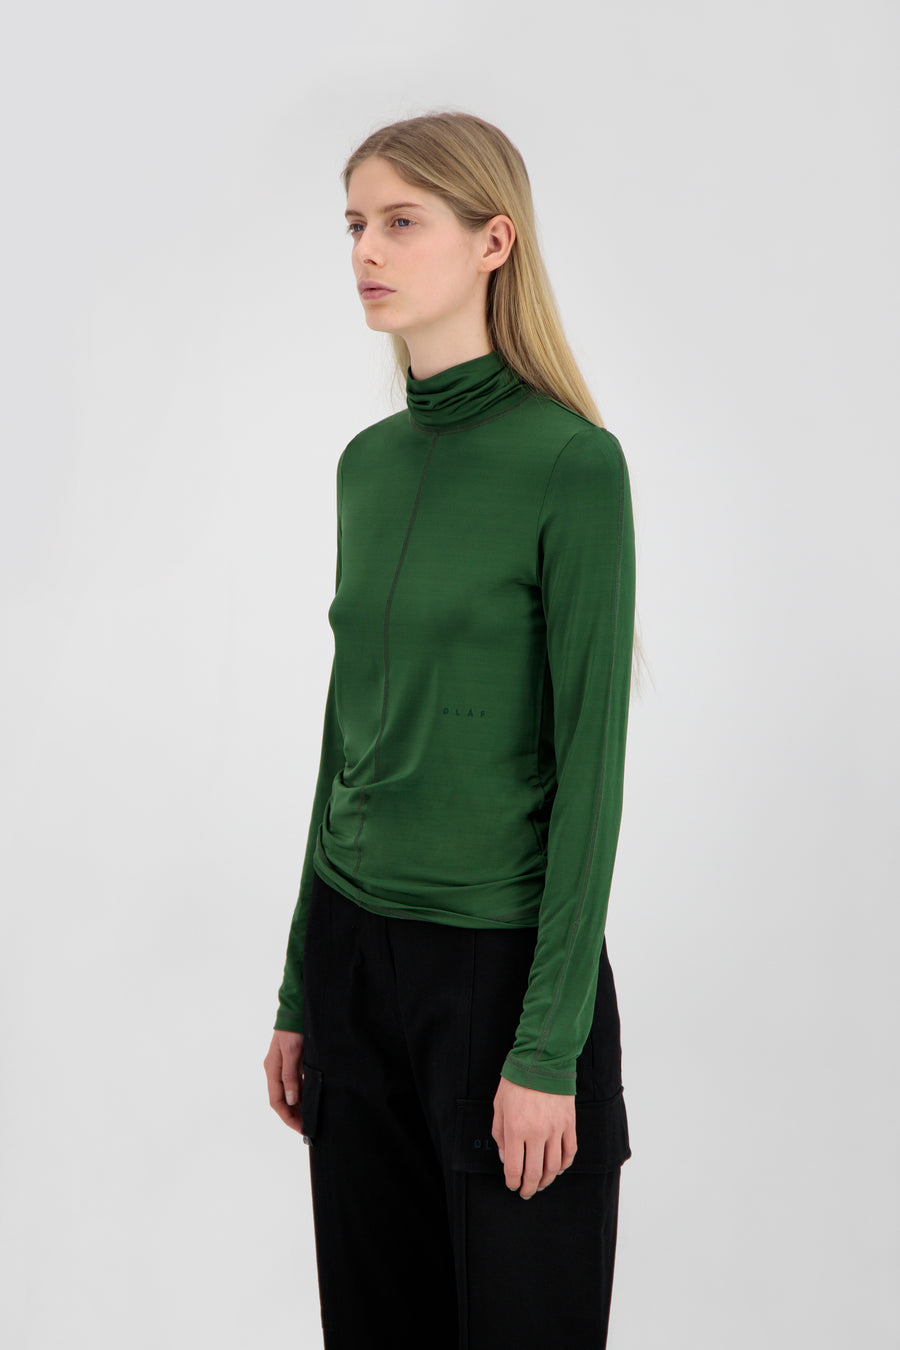 ØLÅF Sporty Turtle Neck <br>Forest Green